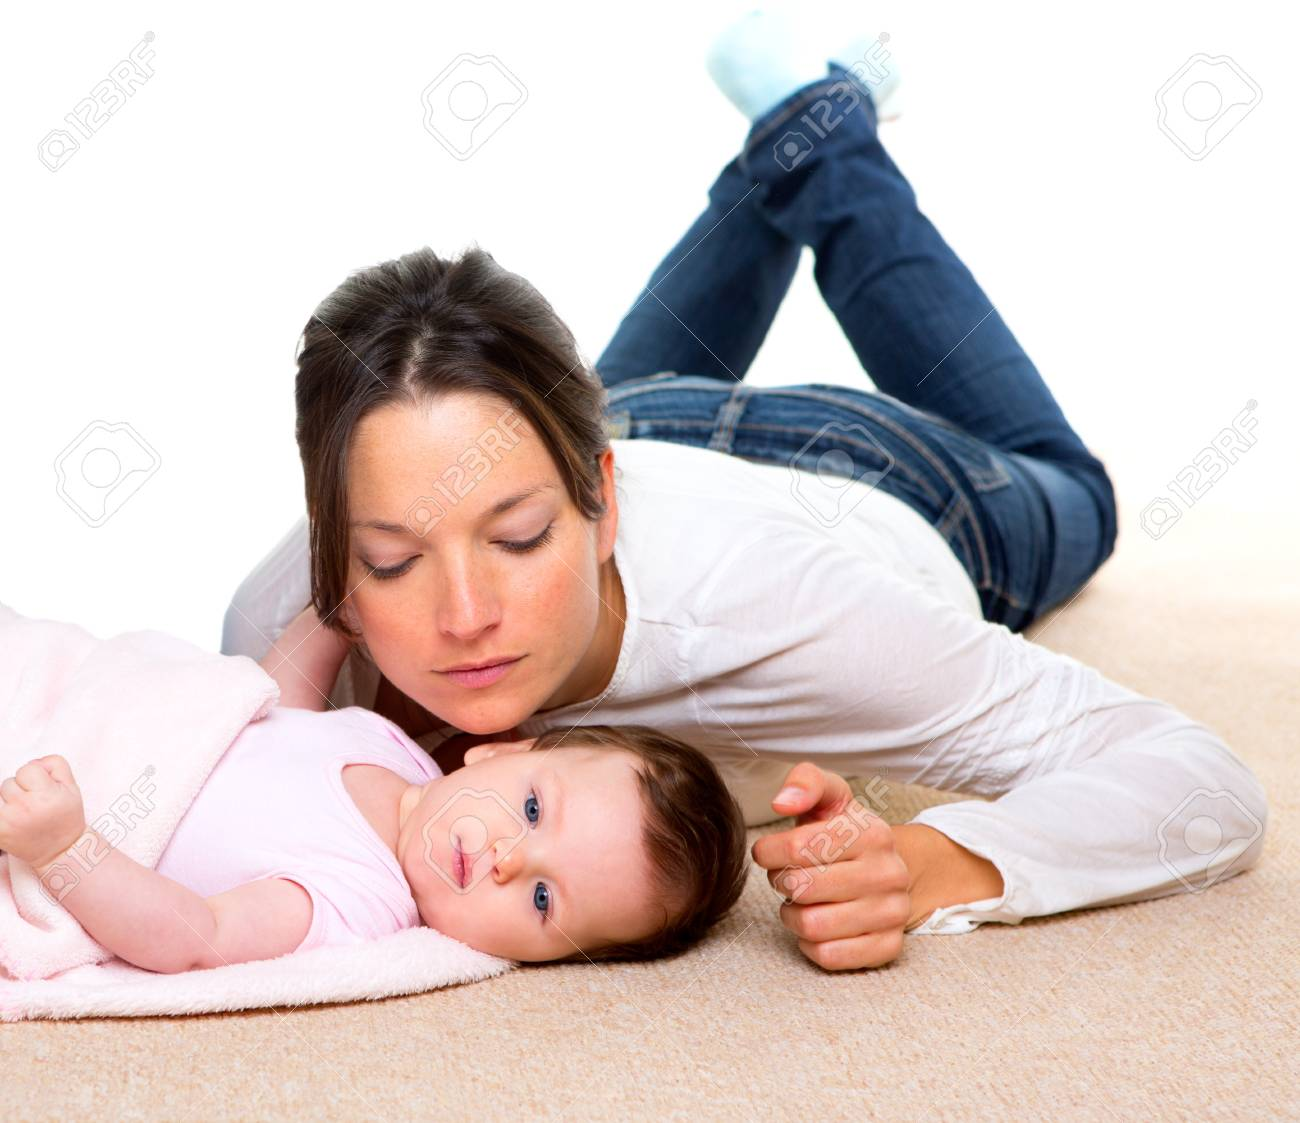 Baby and mother lying on beige carpet together and white background Stock Photo - 17237682